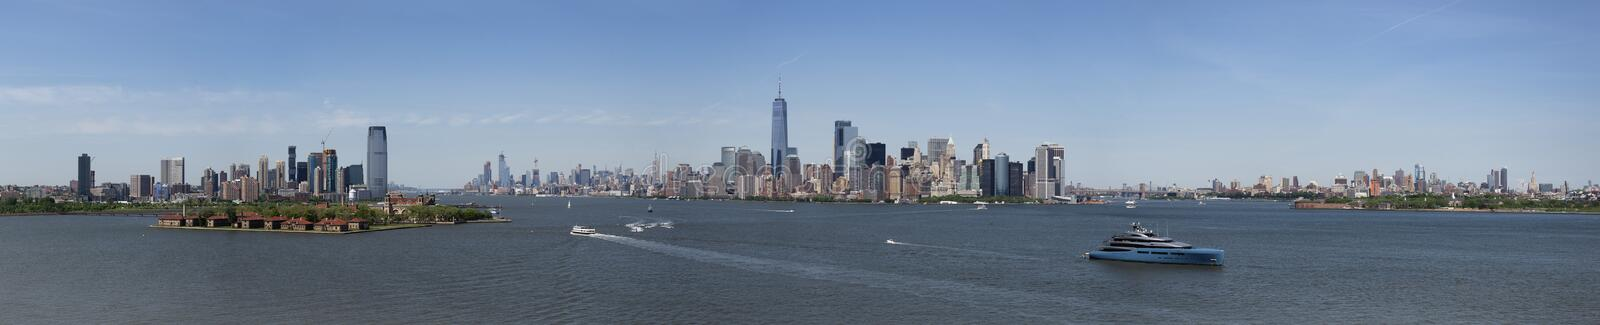 Panorama of Downtown Manhattan Skyline from the Statue of Liberty. Panorama of Downtown Manhattan, Jersey City Skyline from the Statue of Liberty stock photography